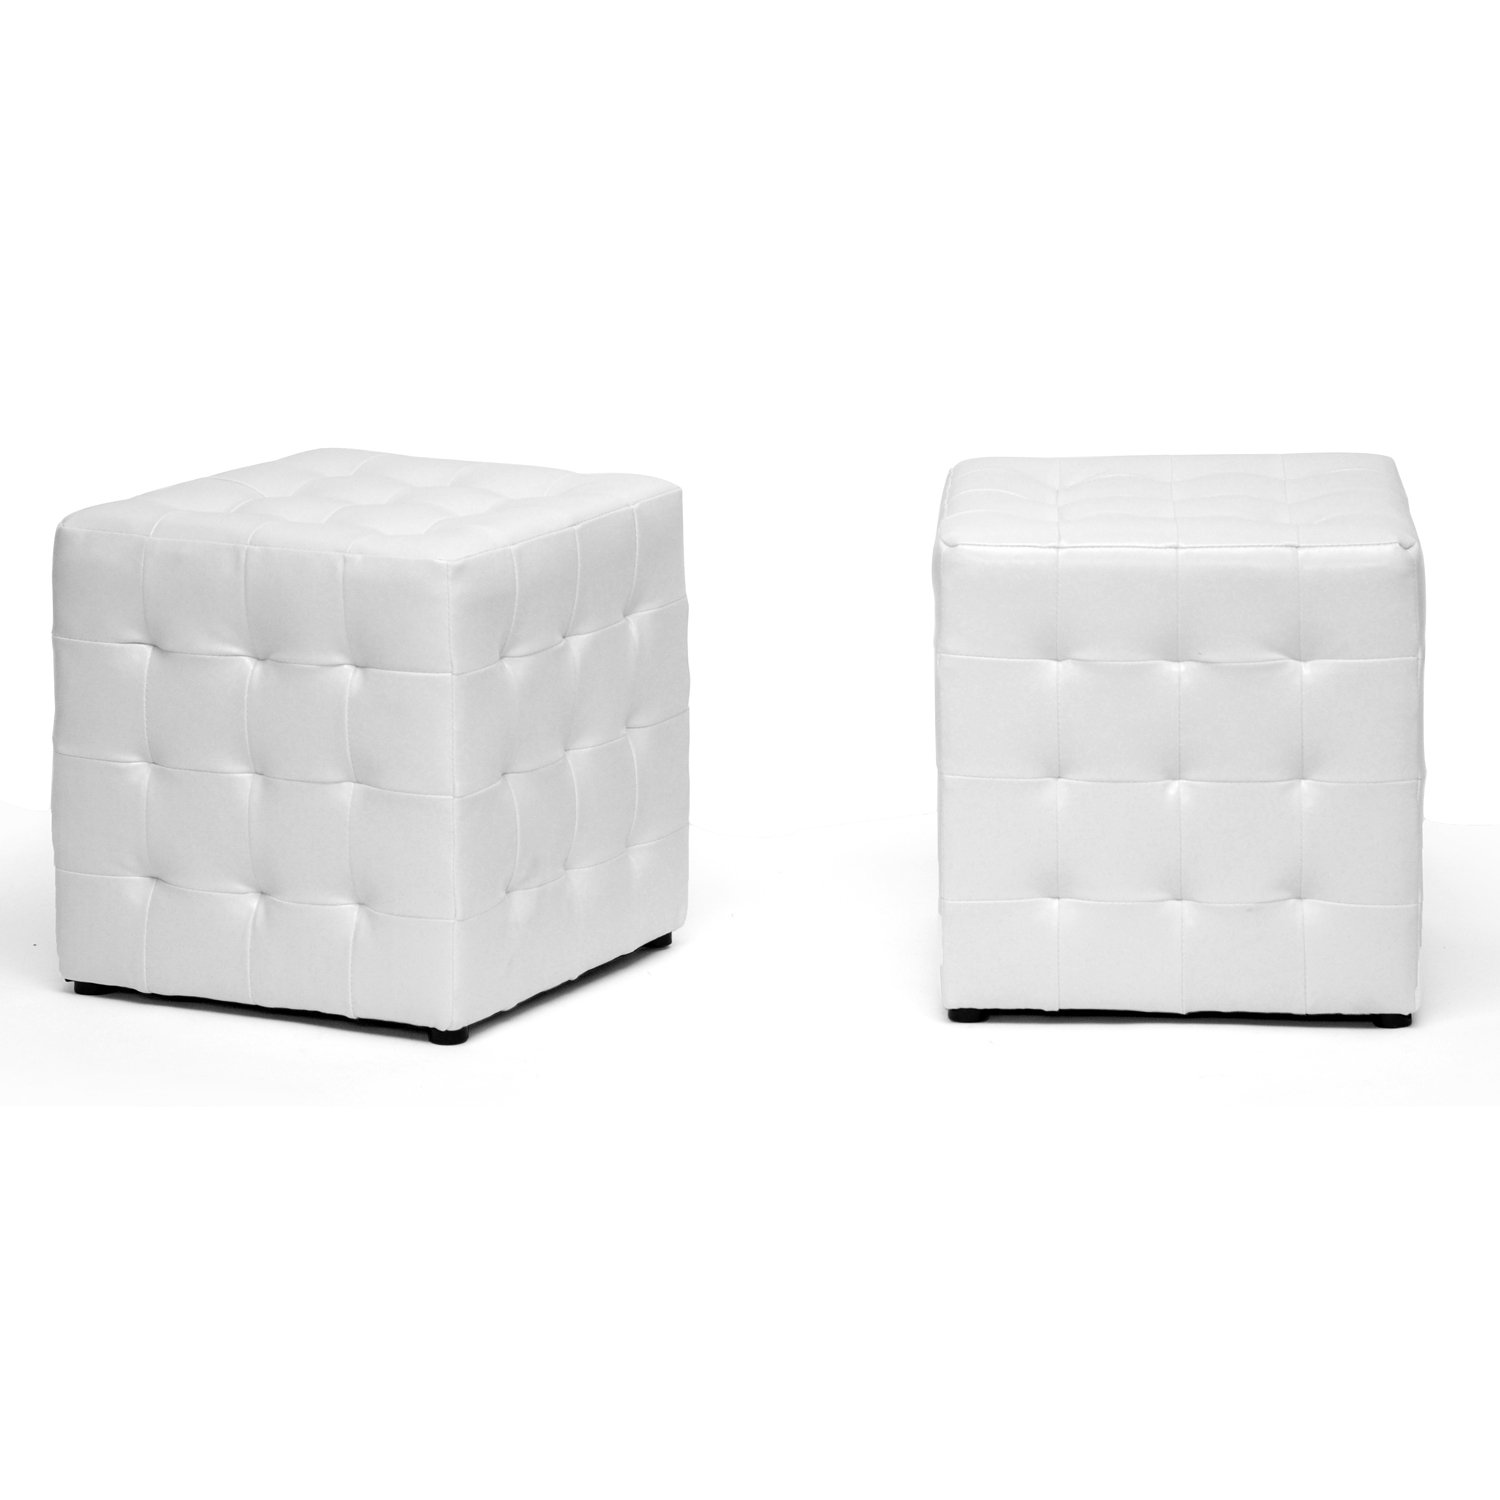 Baxton Studio Siskal Modern Cube Ottoman, White, Set of 2,BH-5589-WHITE-OTTO-2PC by Baxton Studio